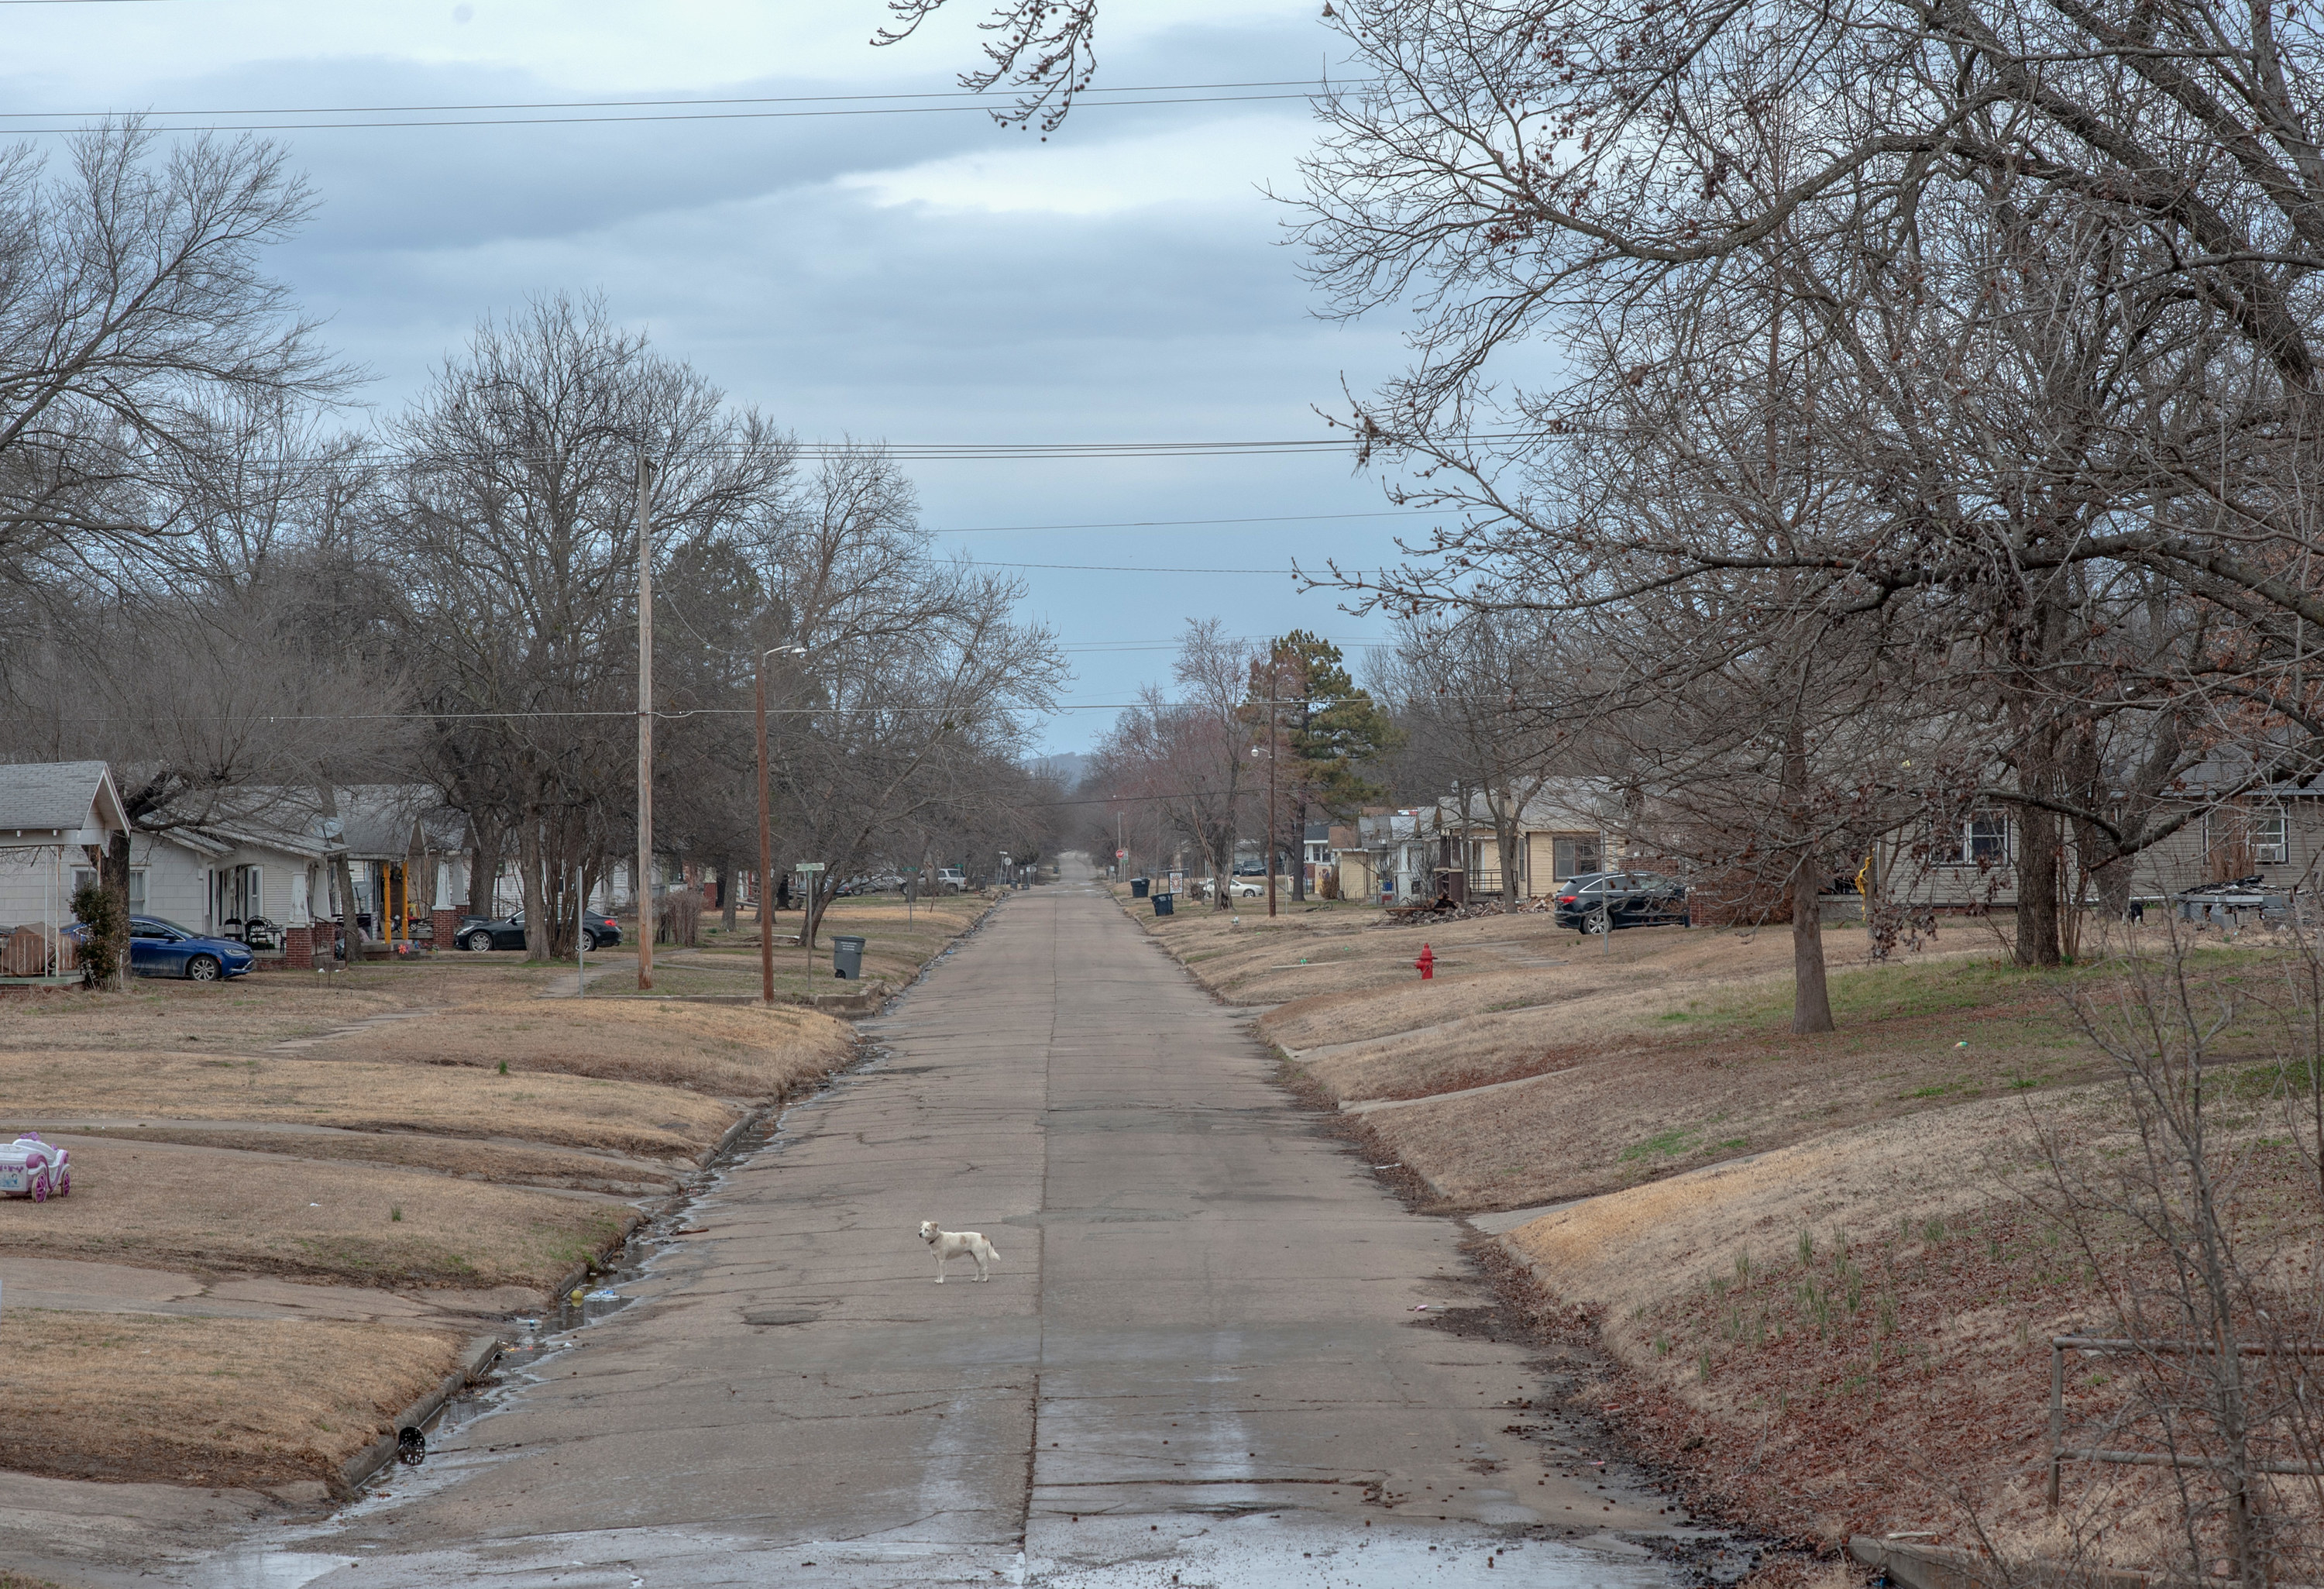 A small white dog stands in the middle of an empty neighborhood street, lined with single-family homes and bare trees